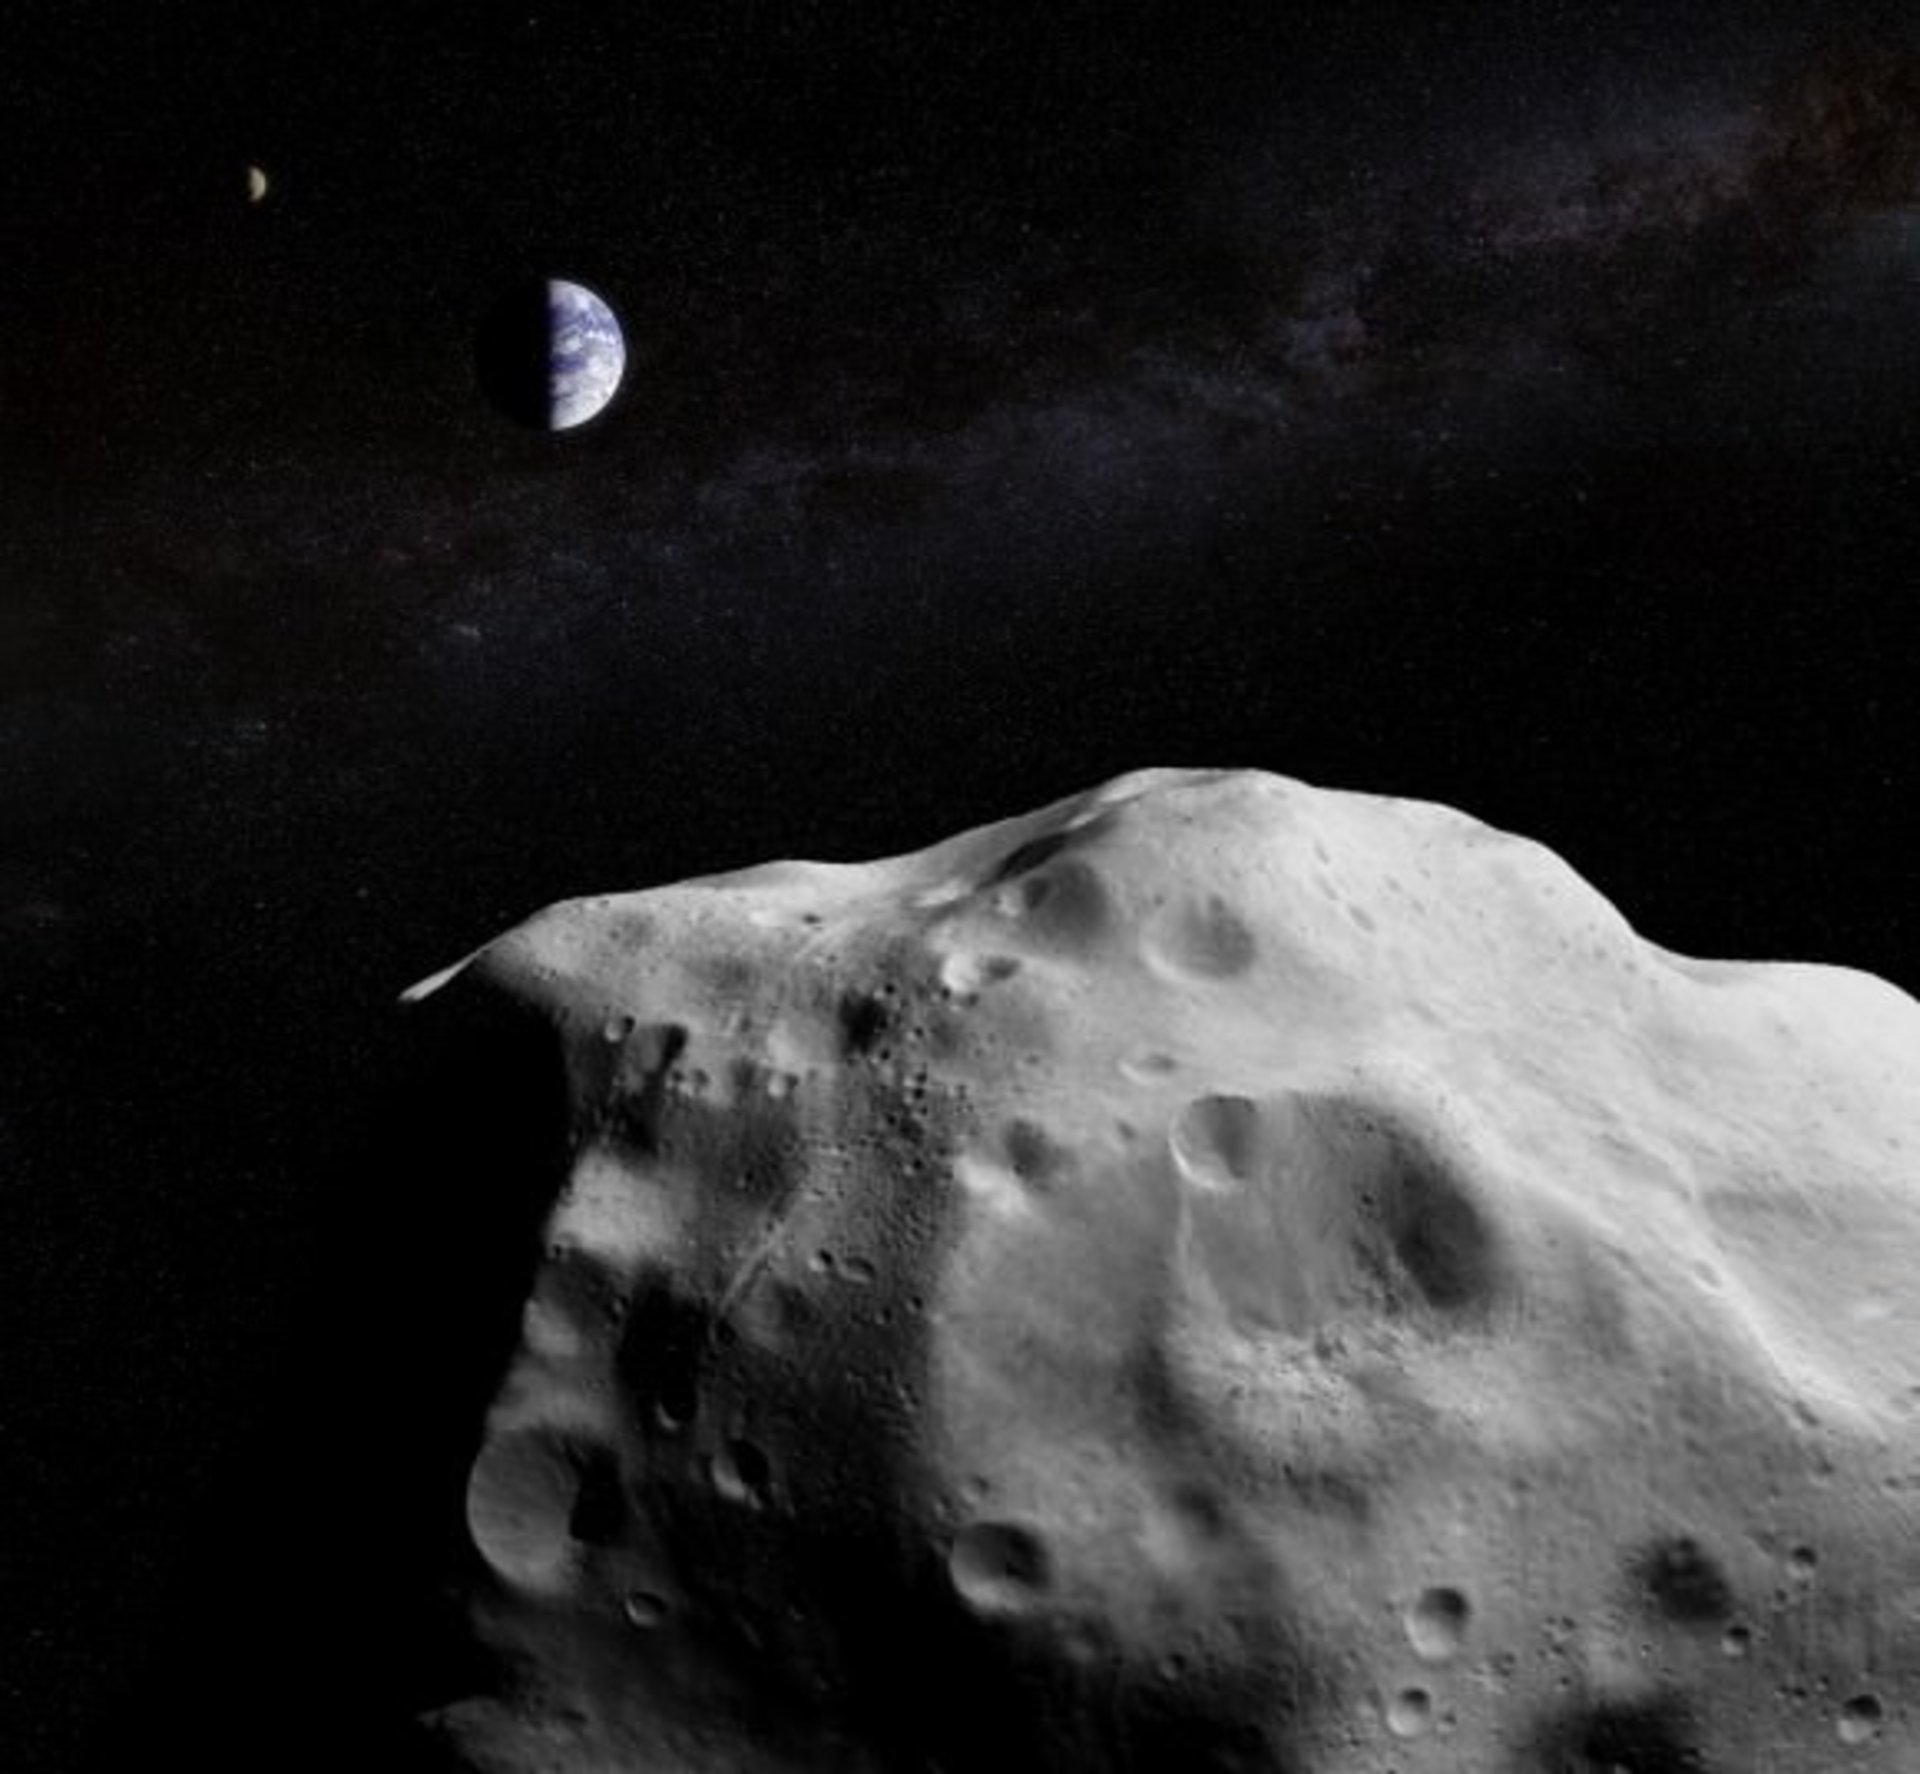 ESA confirms asteroid will miss Earth in 2019 / Space Safety